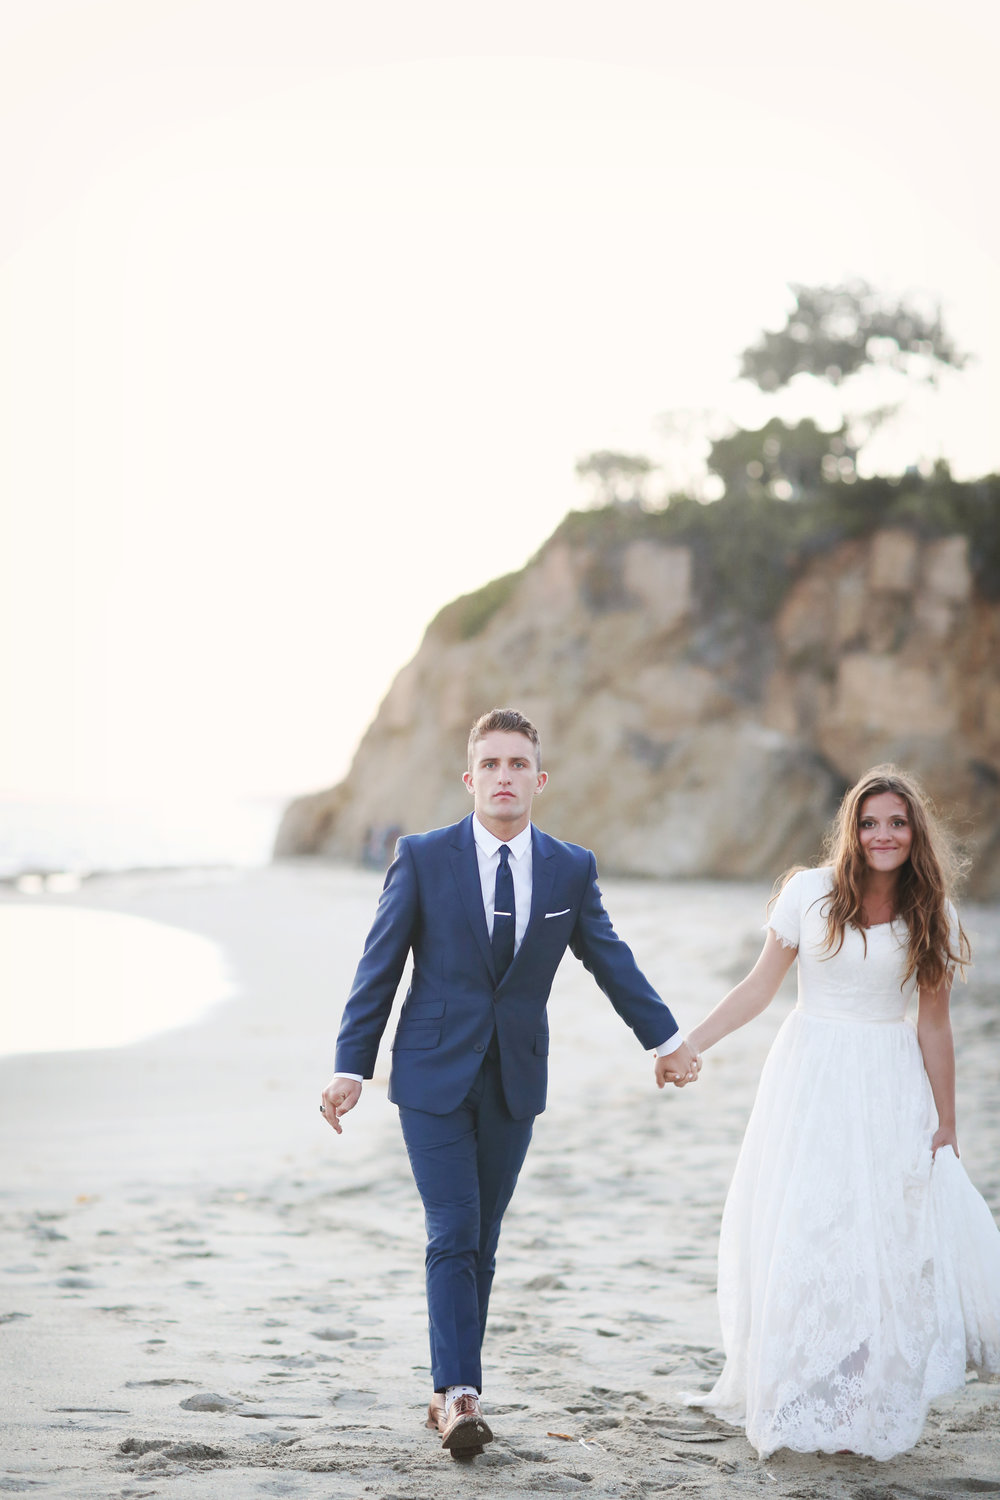 Orange County Beach Wedding - Orange County Wedding Photographer - Bleudog Fotography